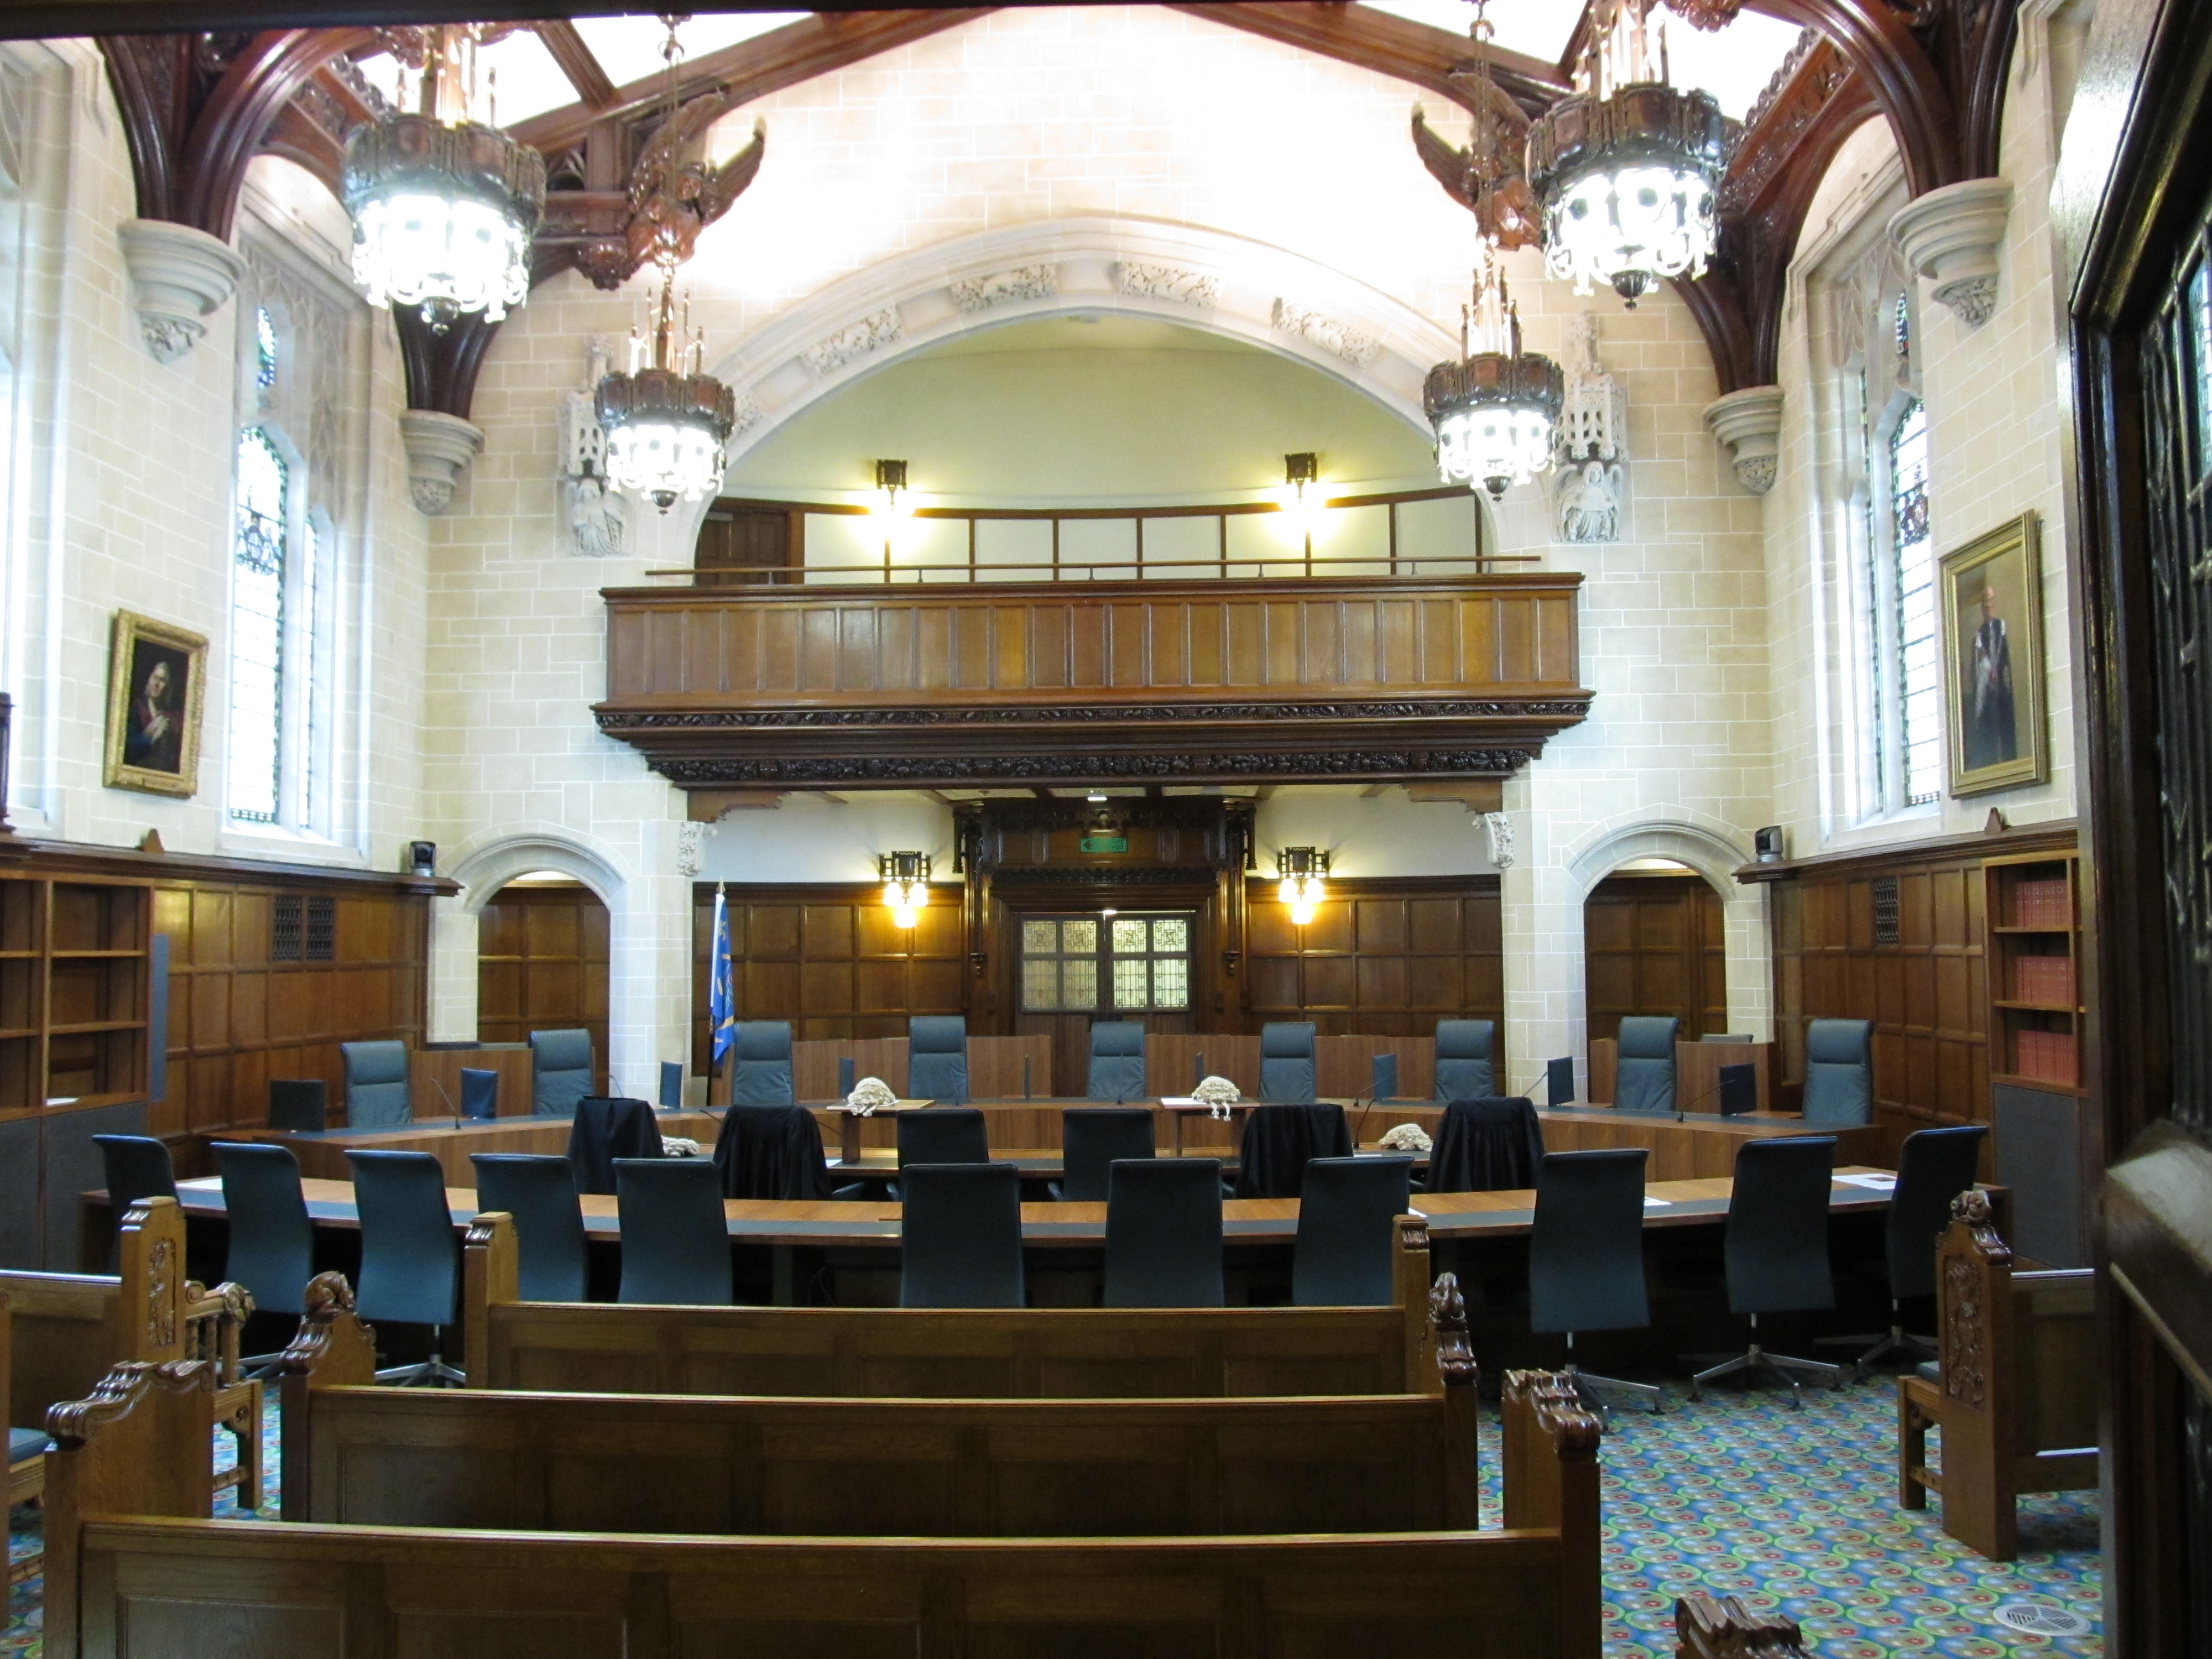 File:UK Supreme Court, Court 1.JPG - Wikimedia Commons Pictures Of Courts